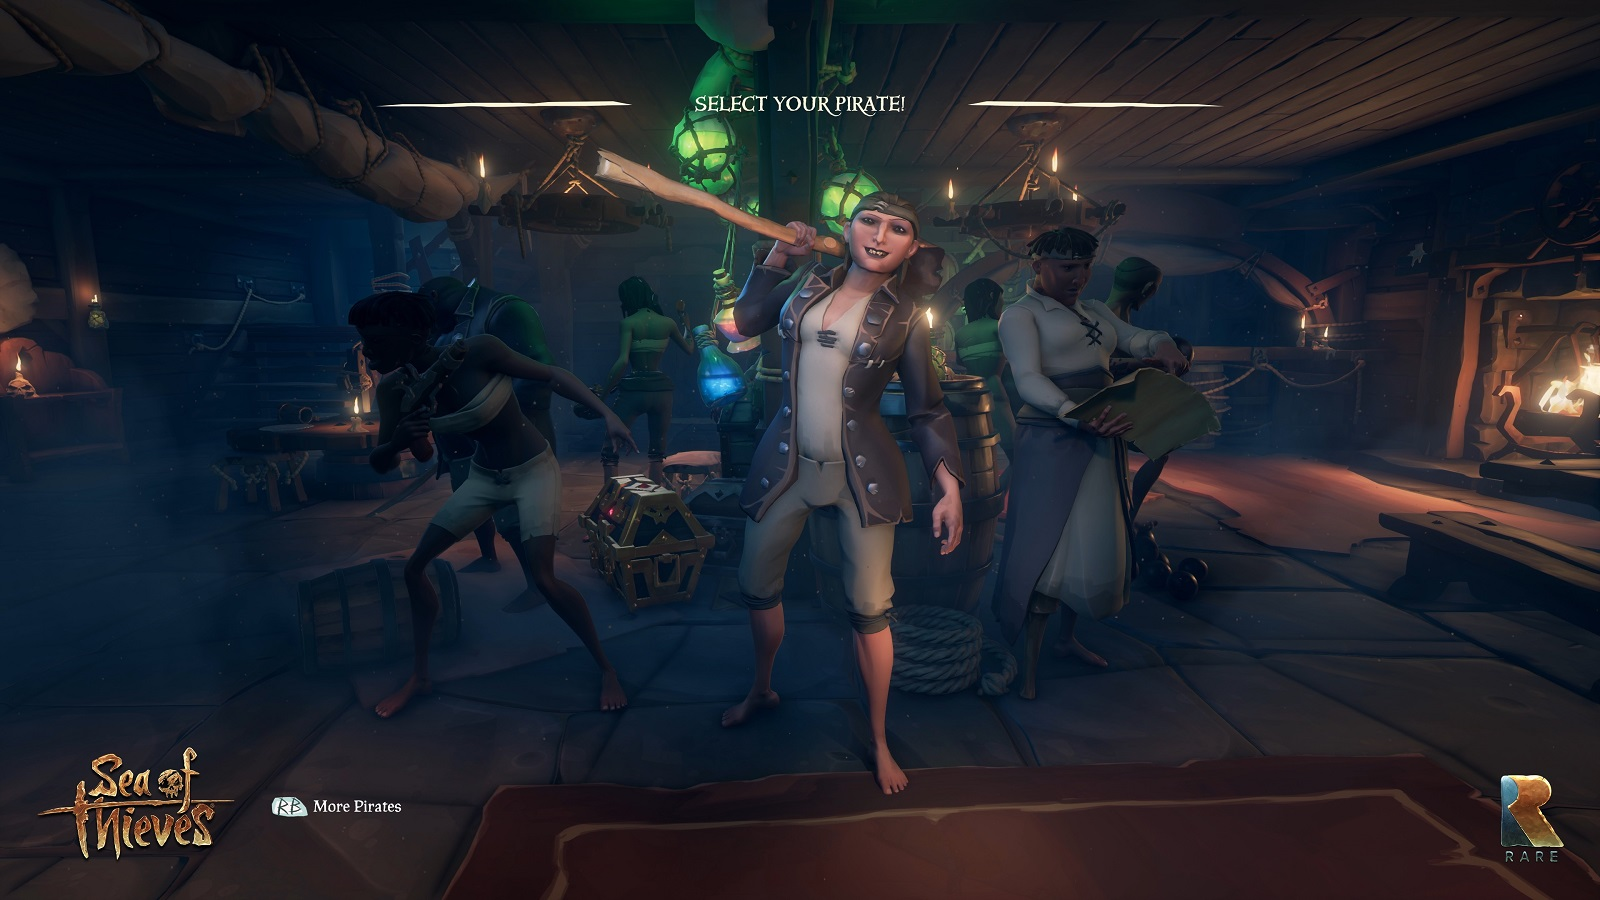 Heres what you can do in Sea of Thieves that you couldnt in the